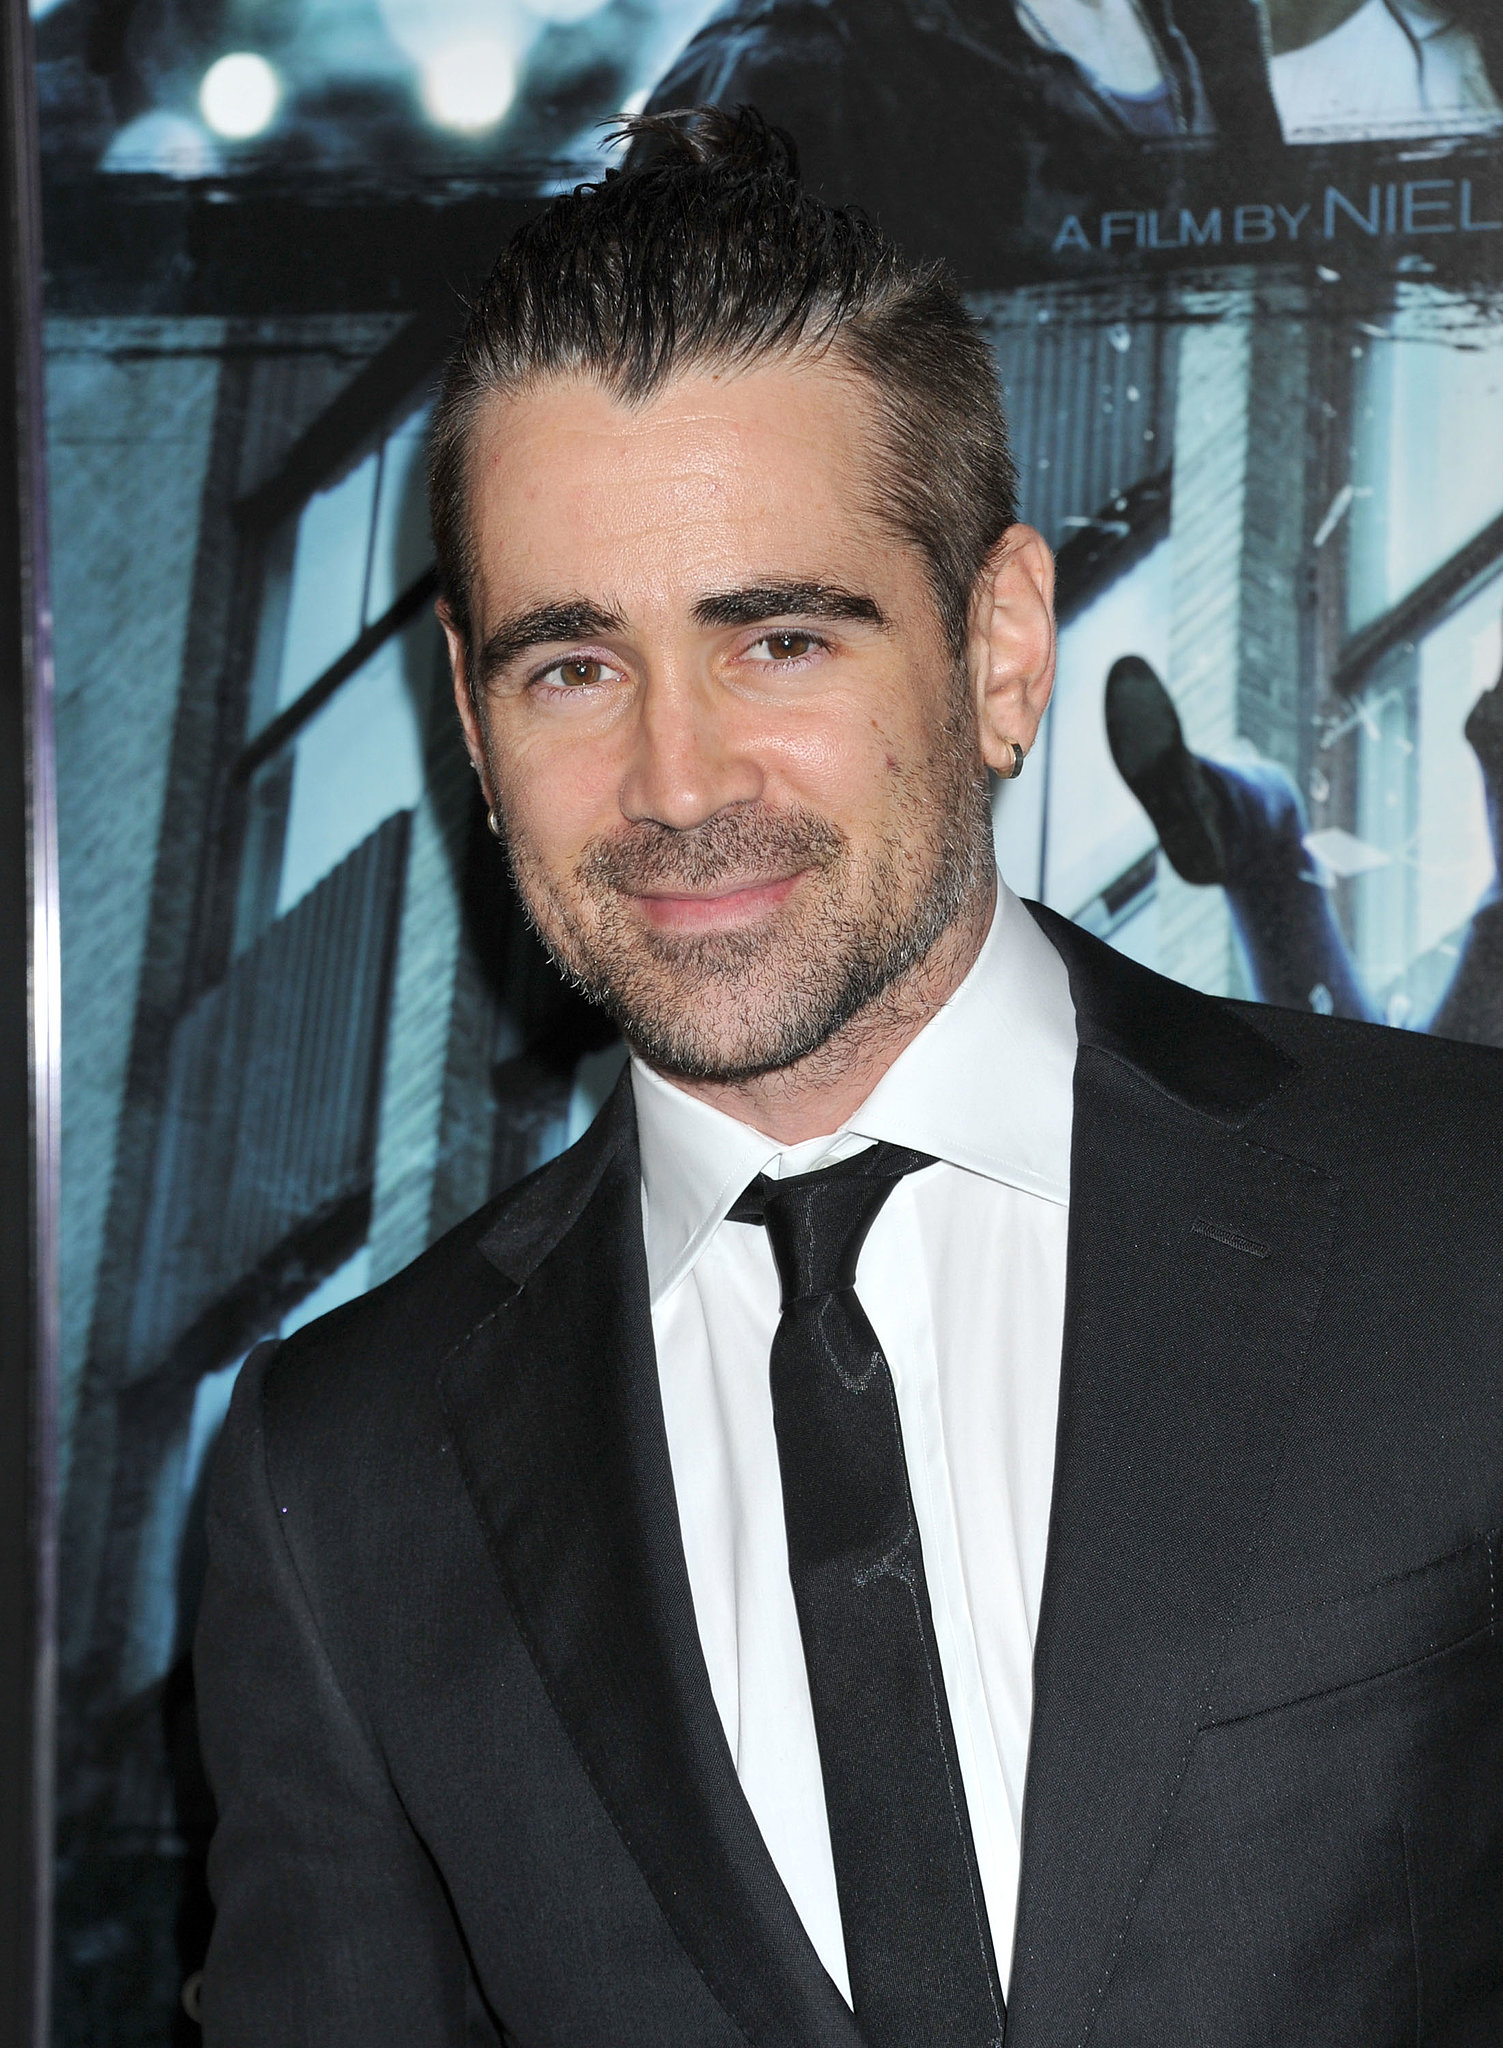 """In a statement for the Stand Up! Campaign in 2010, Colin Farrell talked about his brother Eamon's high school struggles: """"I can't remember much about the years of physical and emotional abuse my brother Eamon suffered. I was very small. The thing I do remember, though, quite literally, is blood on his school shirt when he came home in the afternoon. . . . I didn't understand at that time the concept of 'difference.' Back then, as now, he was just my big brother."""""""